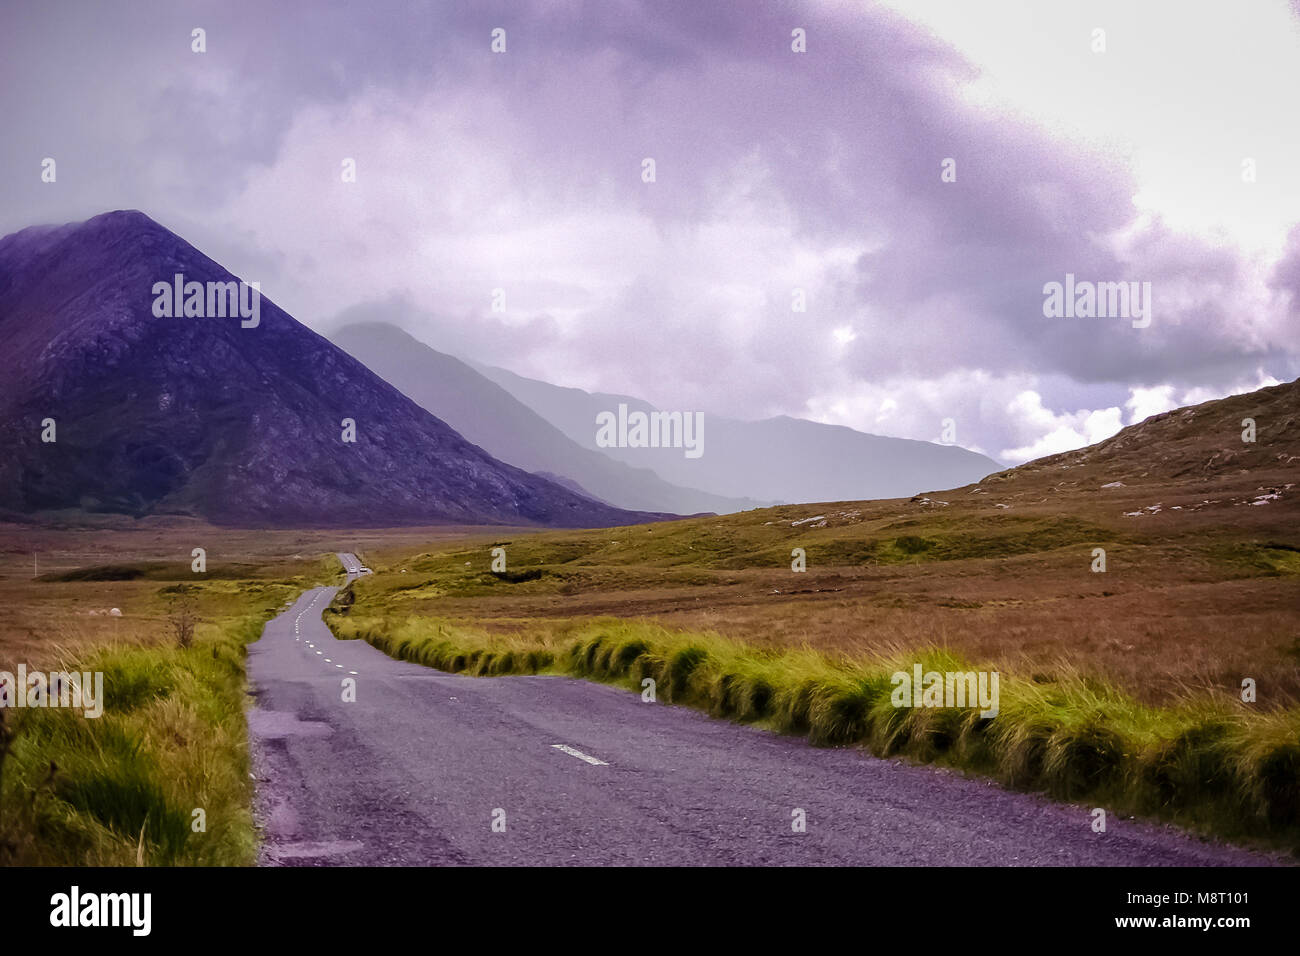 The Twelve the Twelve Bens (Na Beanna Beola) mountain range in the background. Winding road, stormy skies - Stock Image